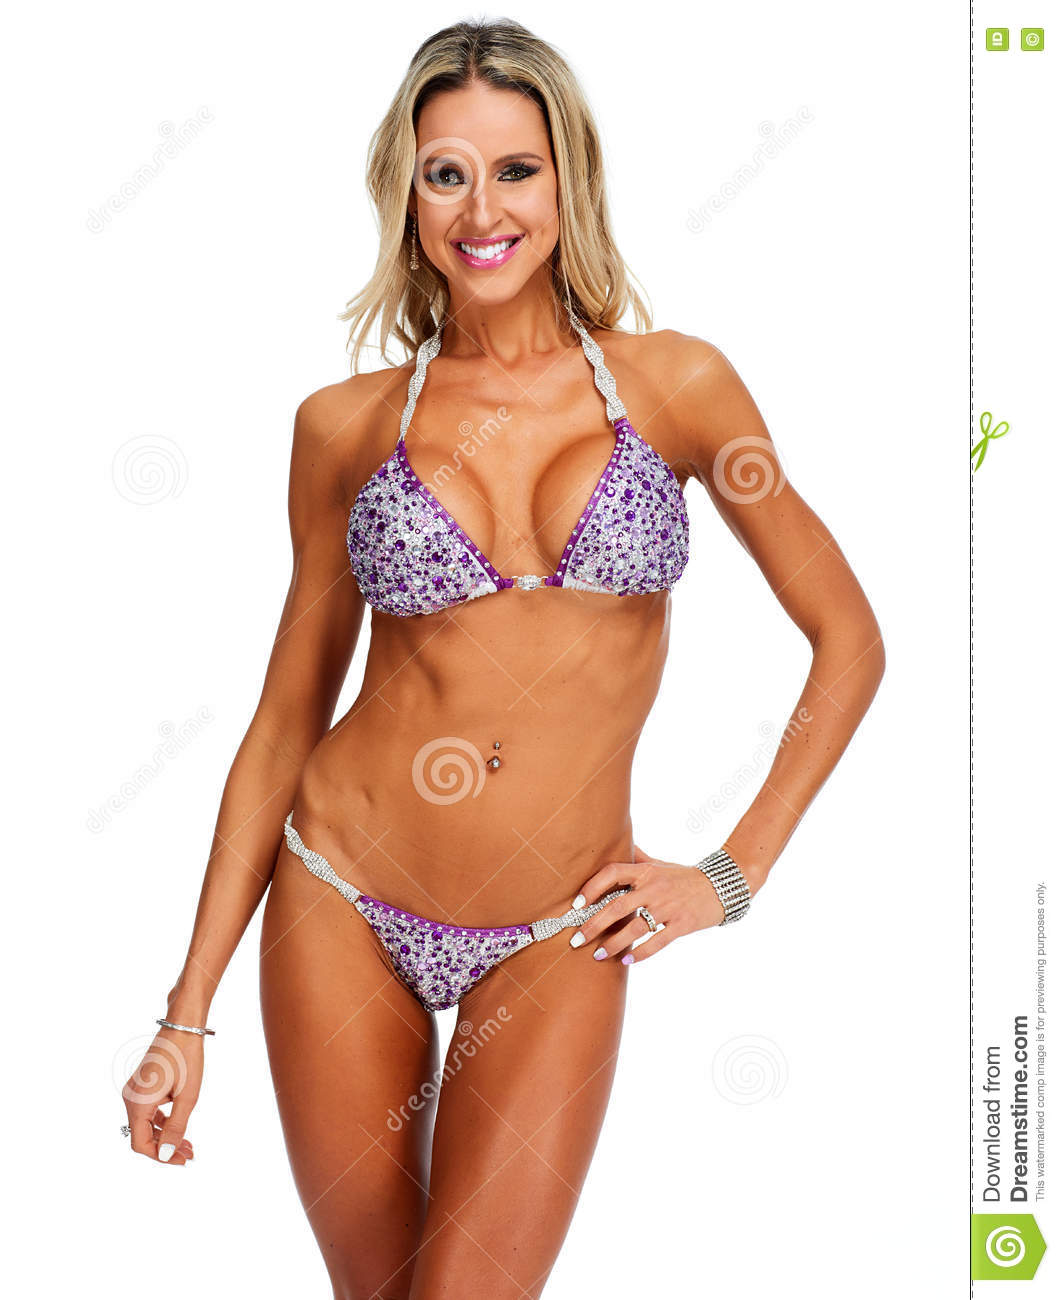 944641216c Young Athletic Girl With Body In Bikini. Stock Photo - Image of ...